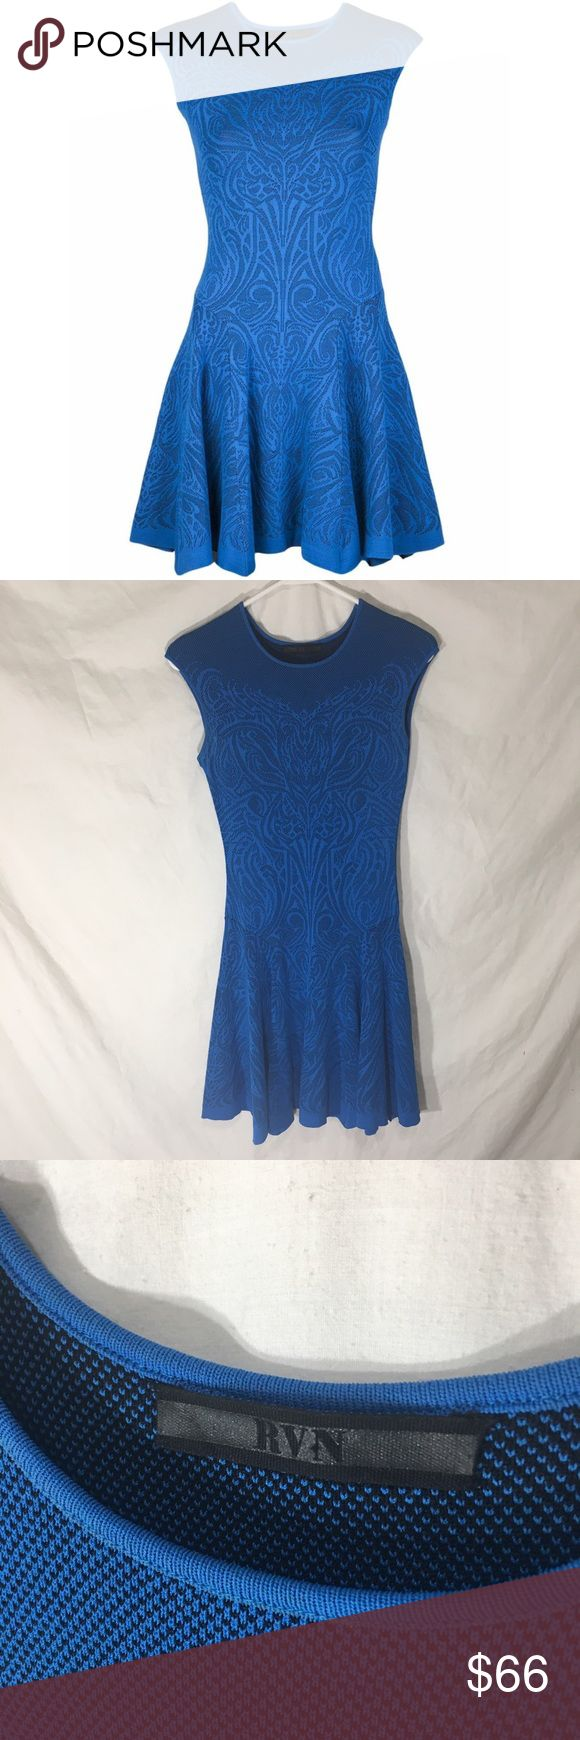 🌟CELEBRITY🌟RVN Blue Tattoo Lace Flare Jacquard Worn by several celebrities such as The Real Housewives Tamra Barney and Lisa Hochstein! Beautiful dress in excellent used condition without flaws. RVN Dresses Mini